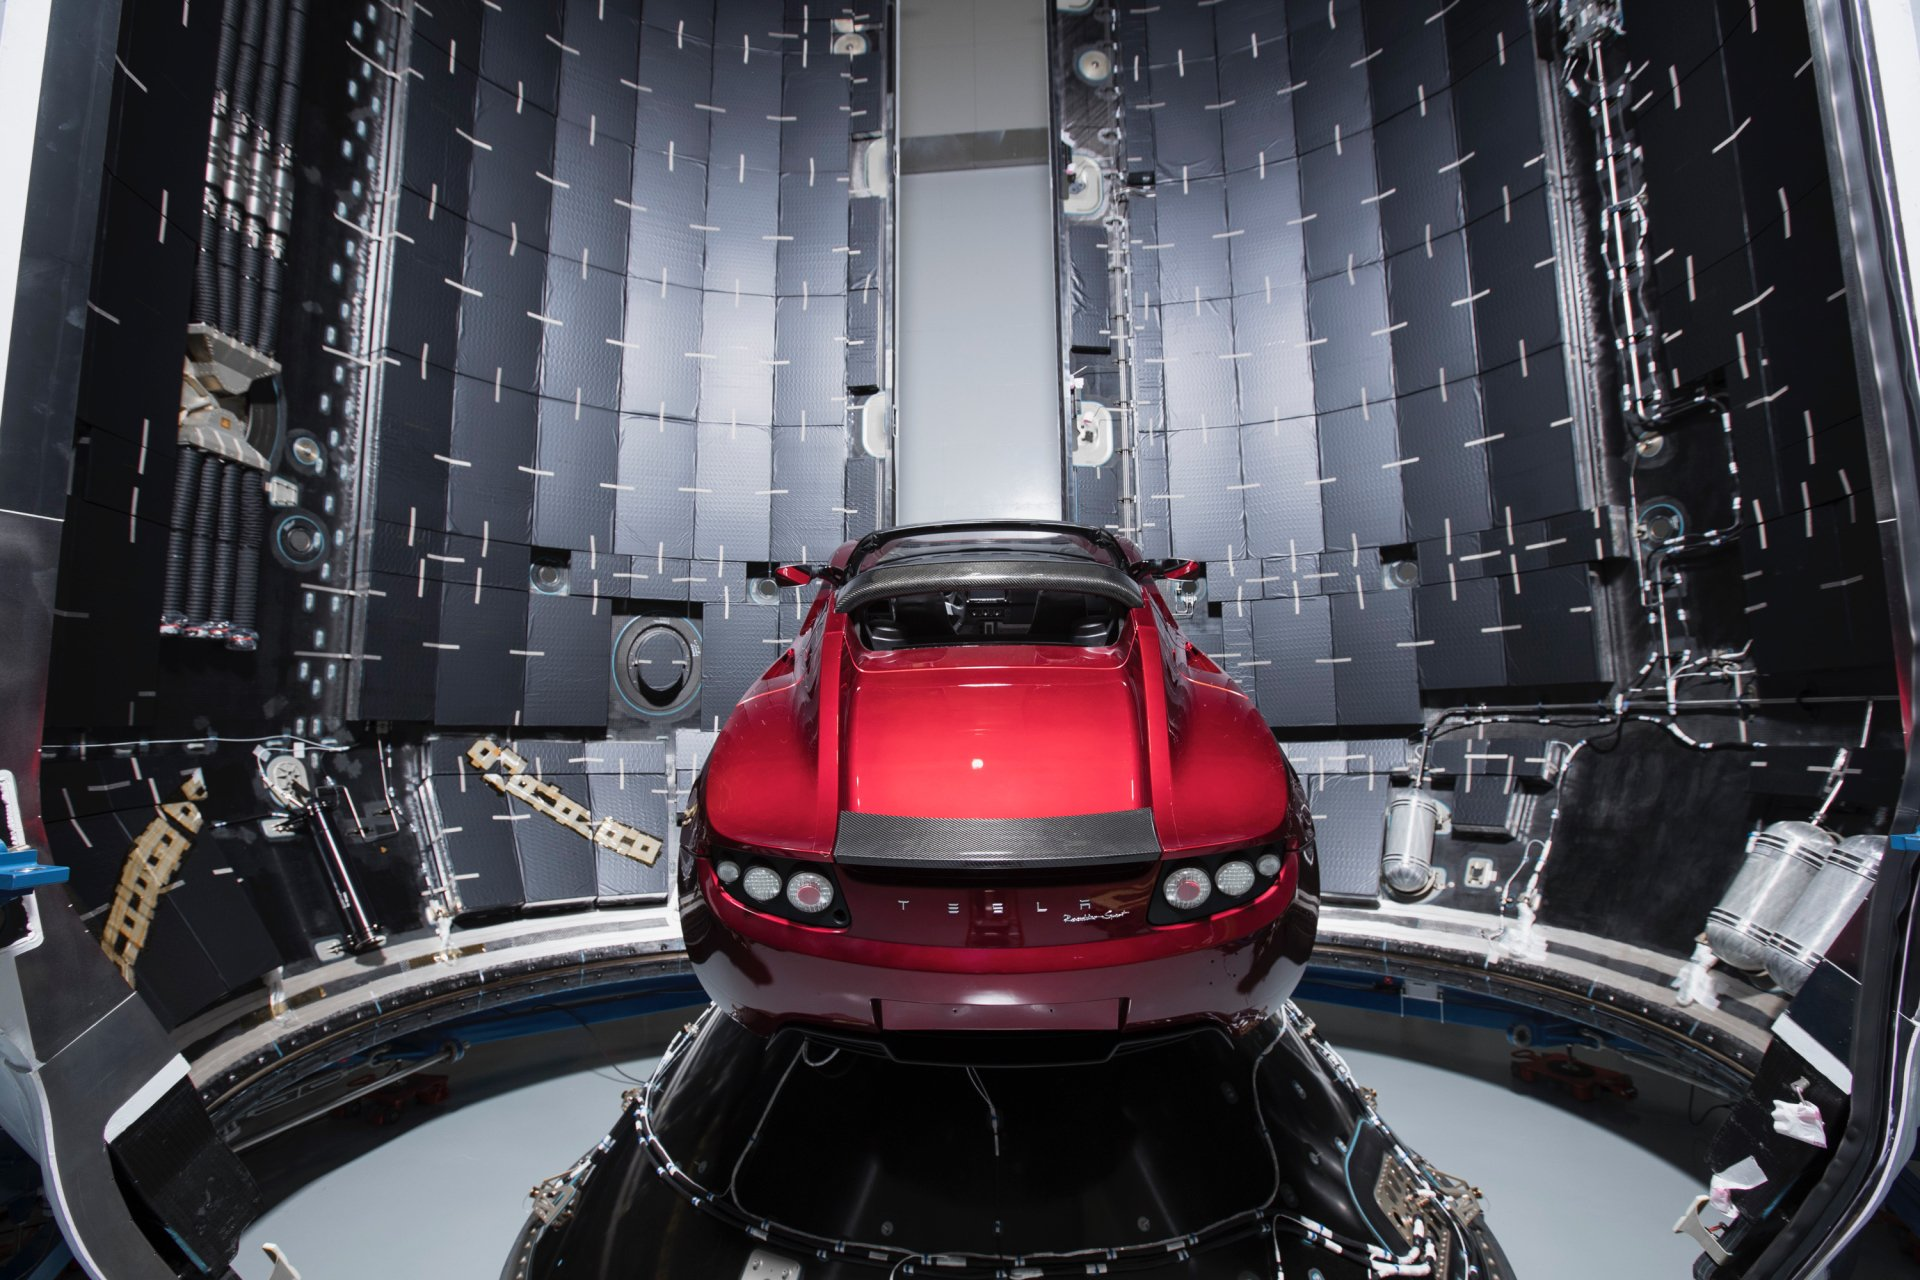 座驾 - Tesla Roadster  Falcon Heavy Red Car 壁纸